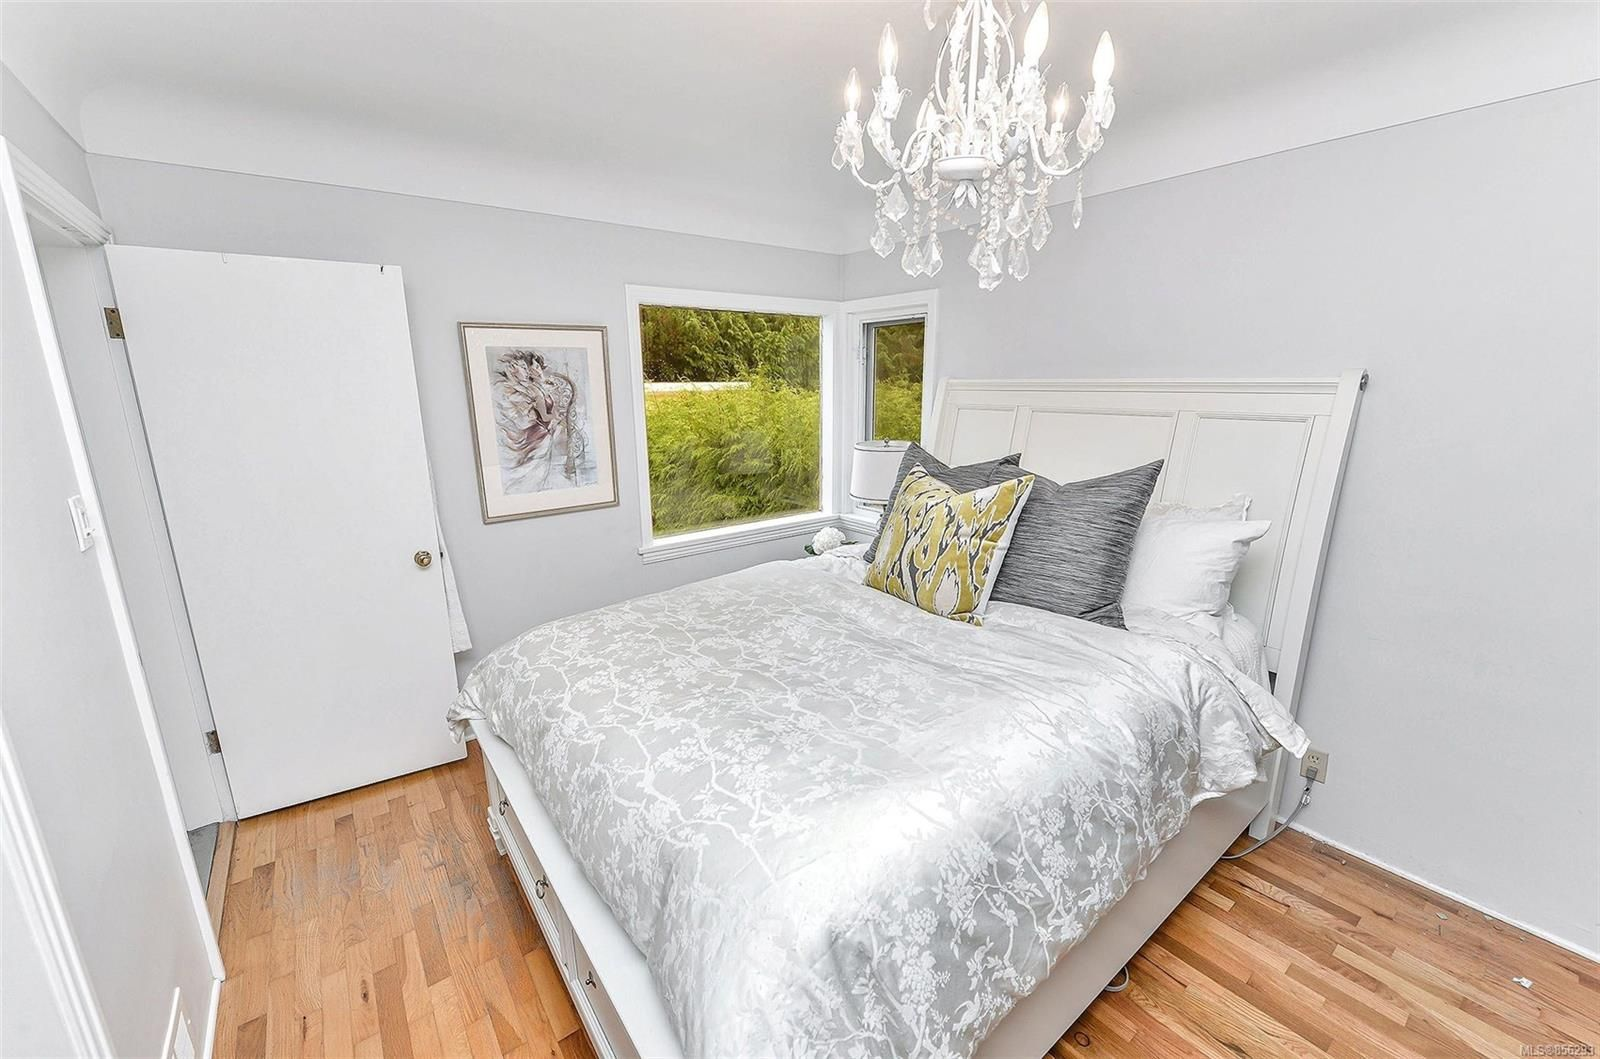 Photo 19: Photos: 1753 Armstrong Ave in : OB North Oak Bay House for sale (Oak Bay)  : MLS®# 856293